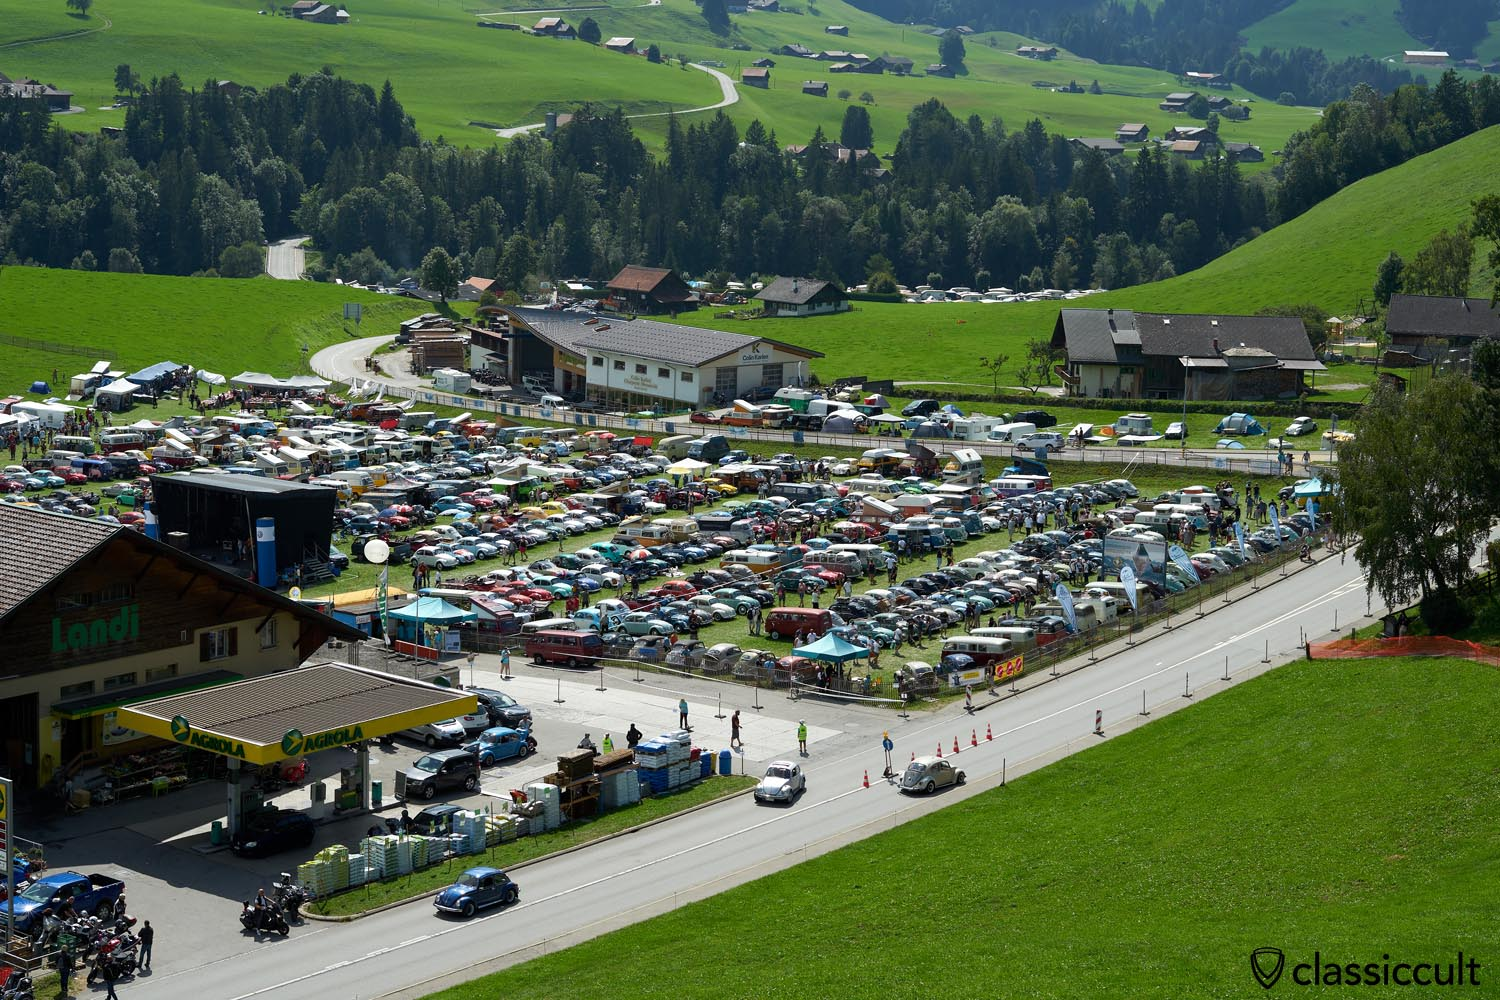 2019 Chateau D`Oex VW Meeting view from above